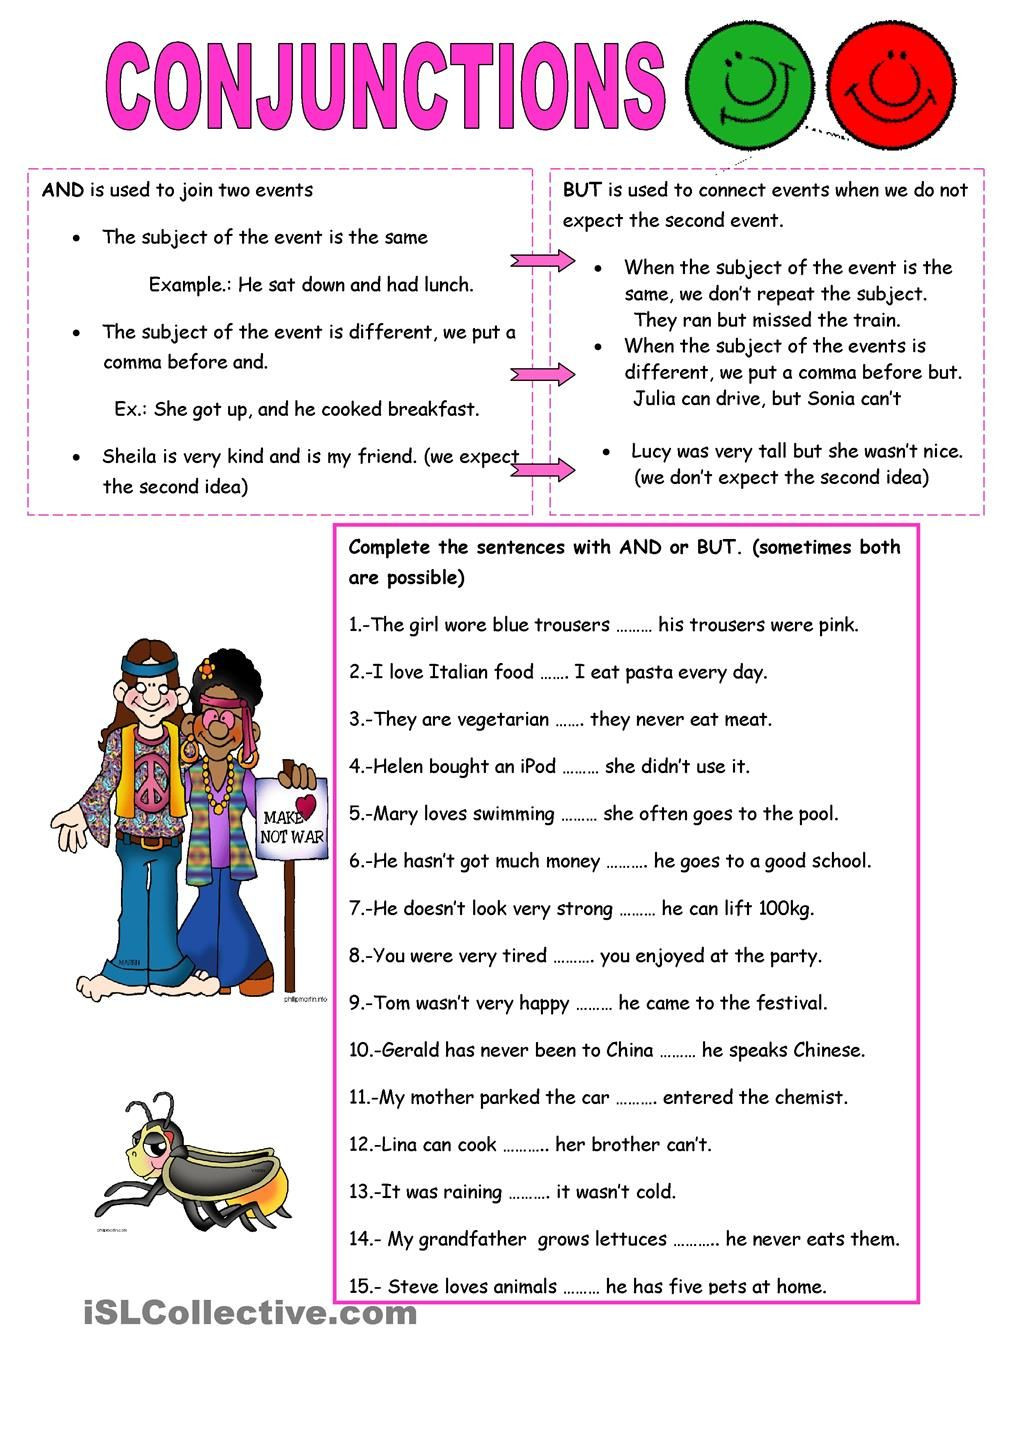 Conjunctions Worksheets for Grade 3 Conjunctions and but